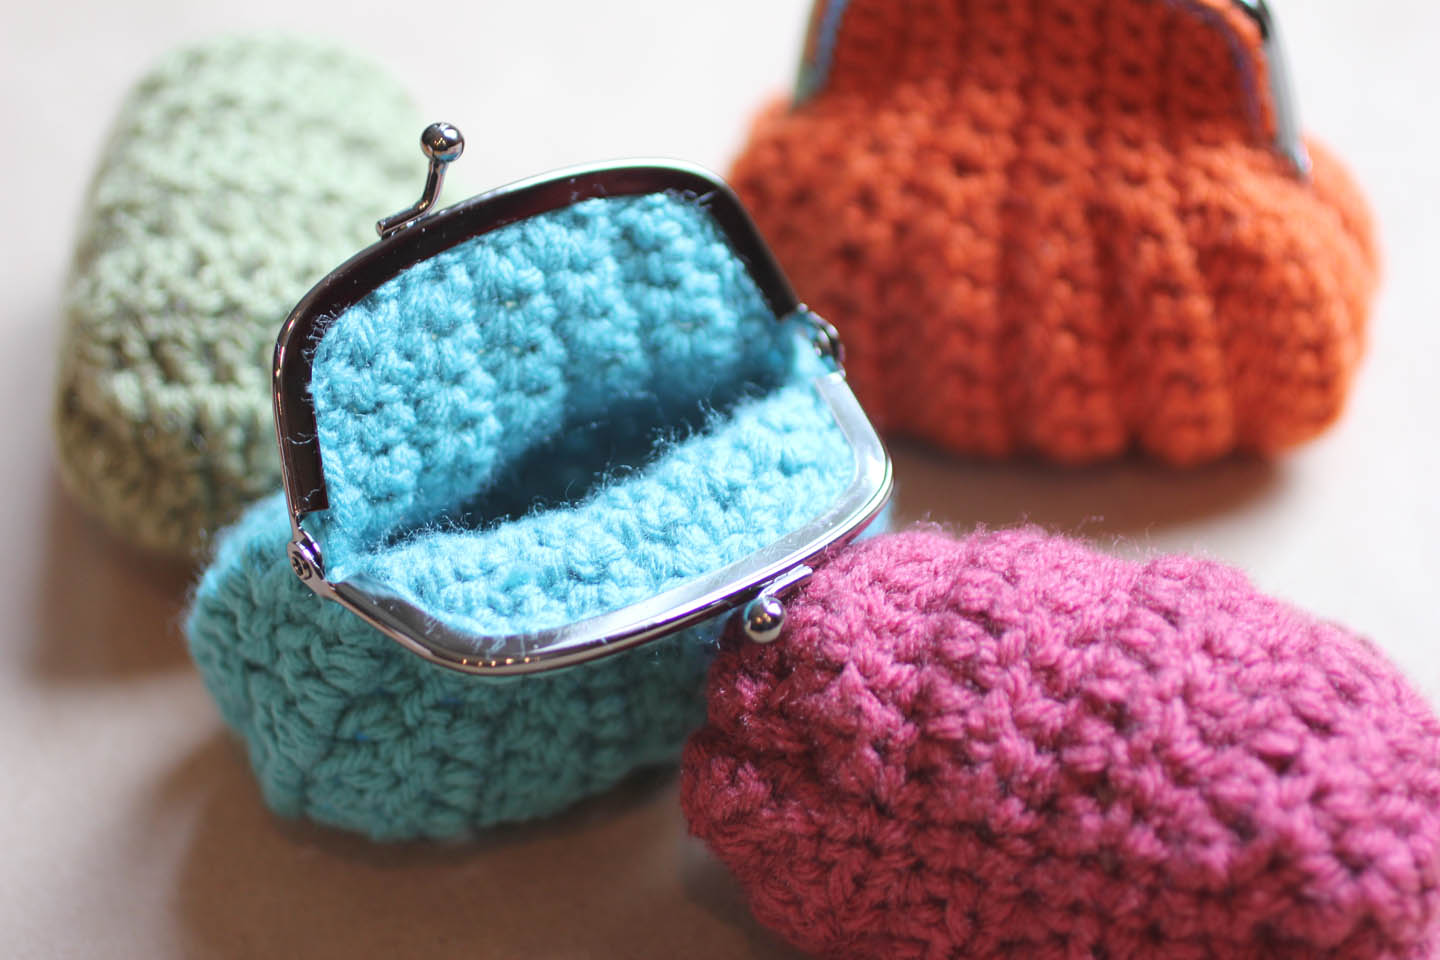 Crochet Coin Purse Pattern : sara @ applestone drive April 26, 2012 at 9:19 AM